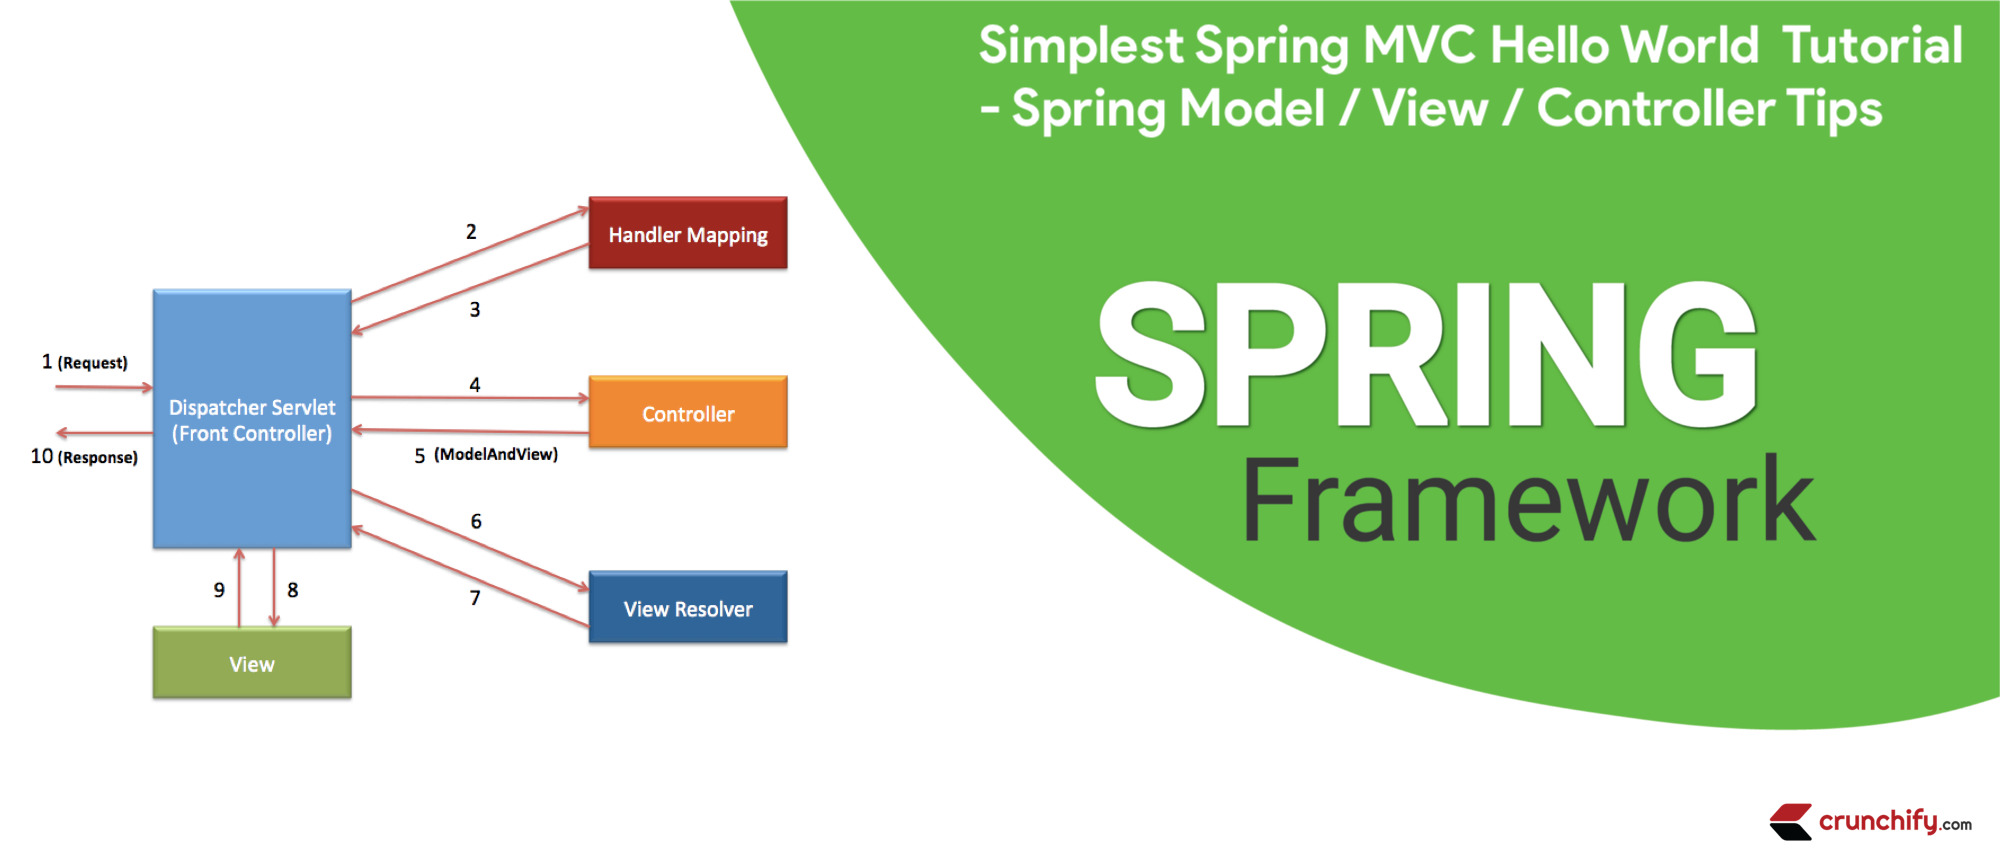 Simplest Spring MVC tutorial by Crunchify.com